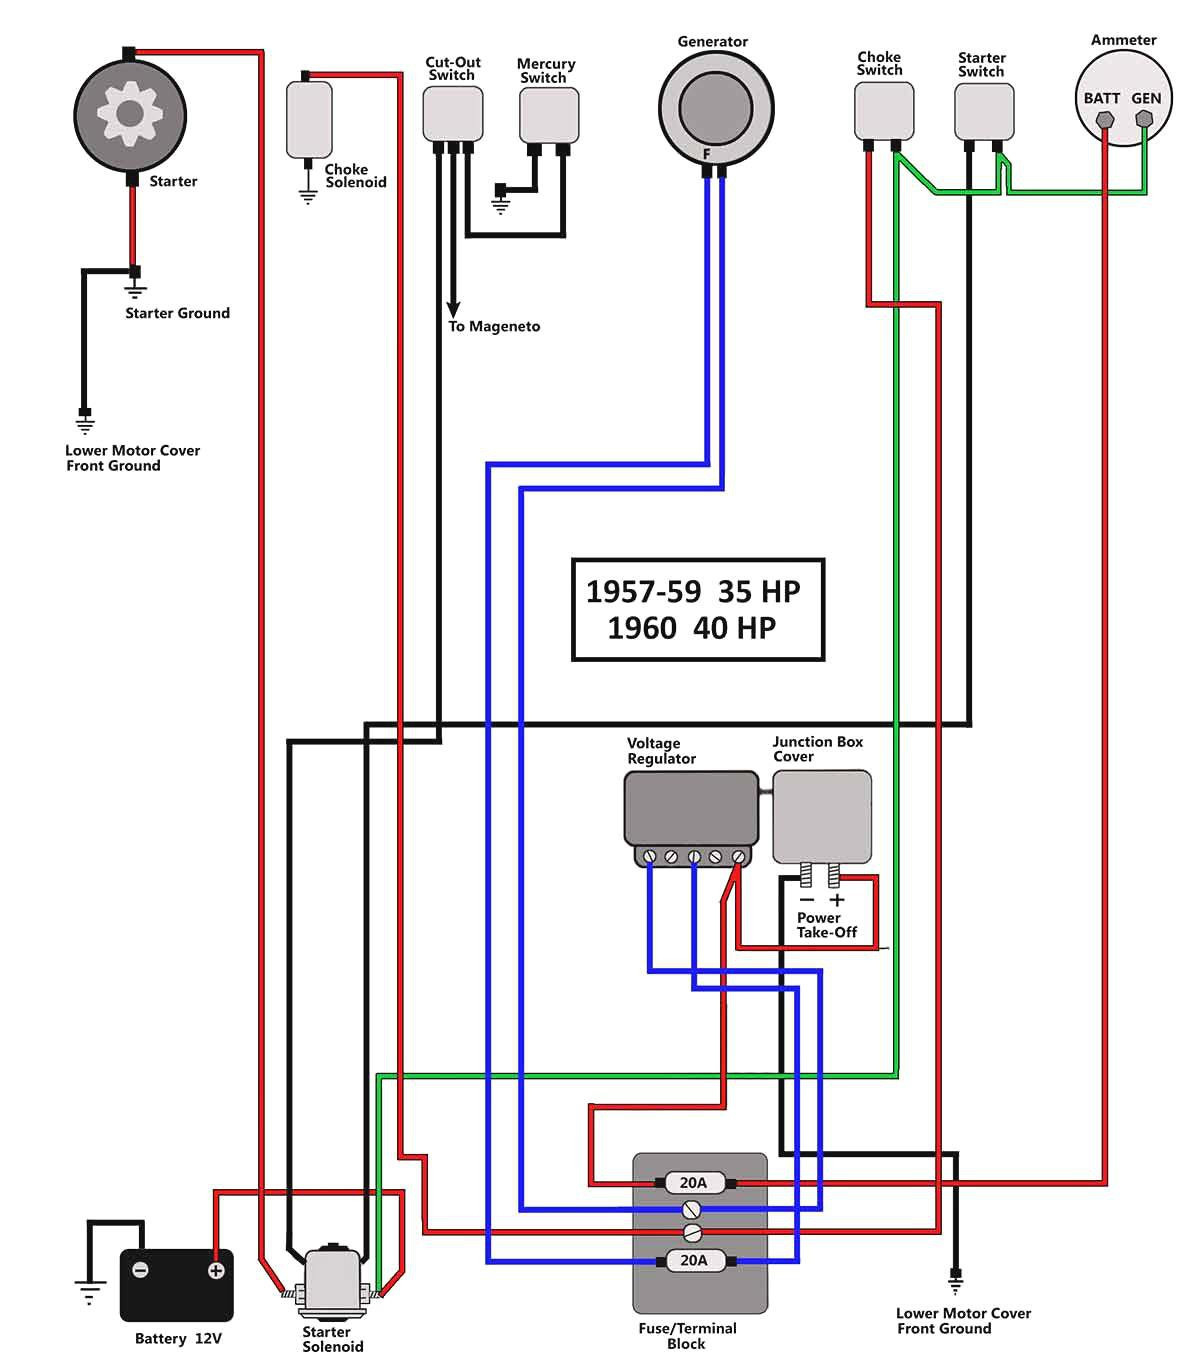 50 hp mercury outboard wiring diagram - mercury outboard wiring diagram  ignition switch unique motor marine